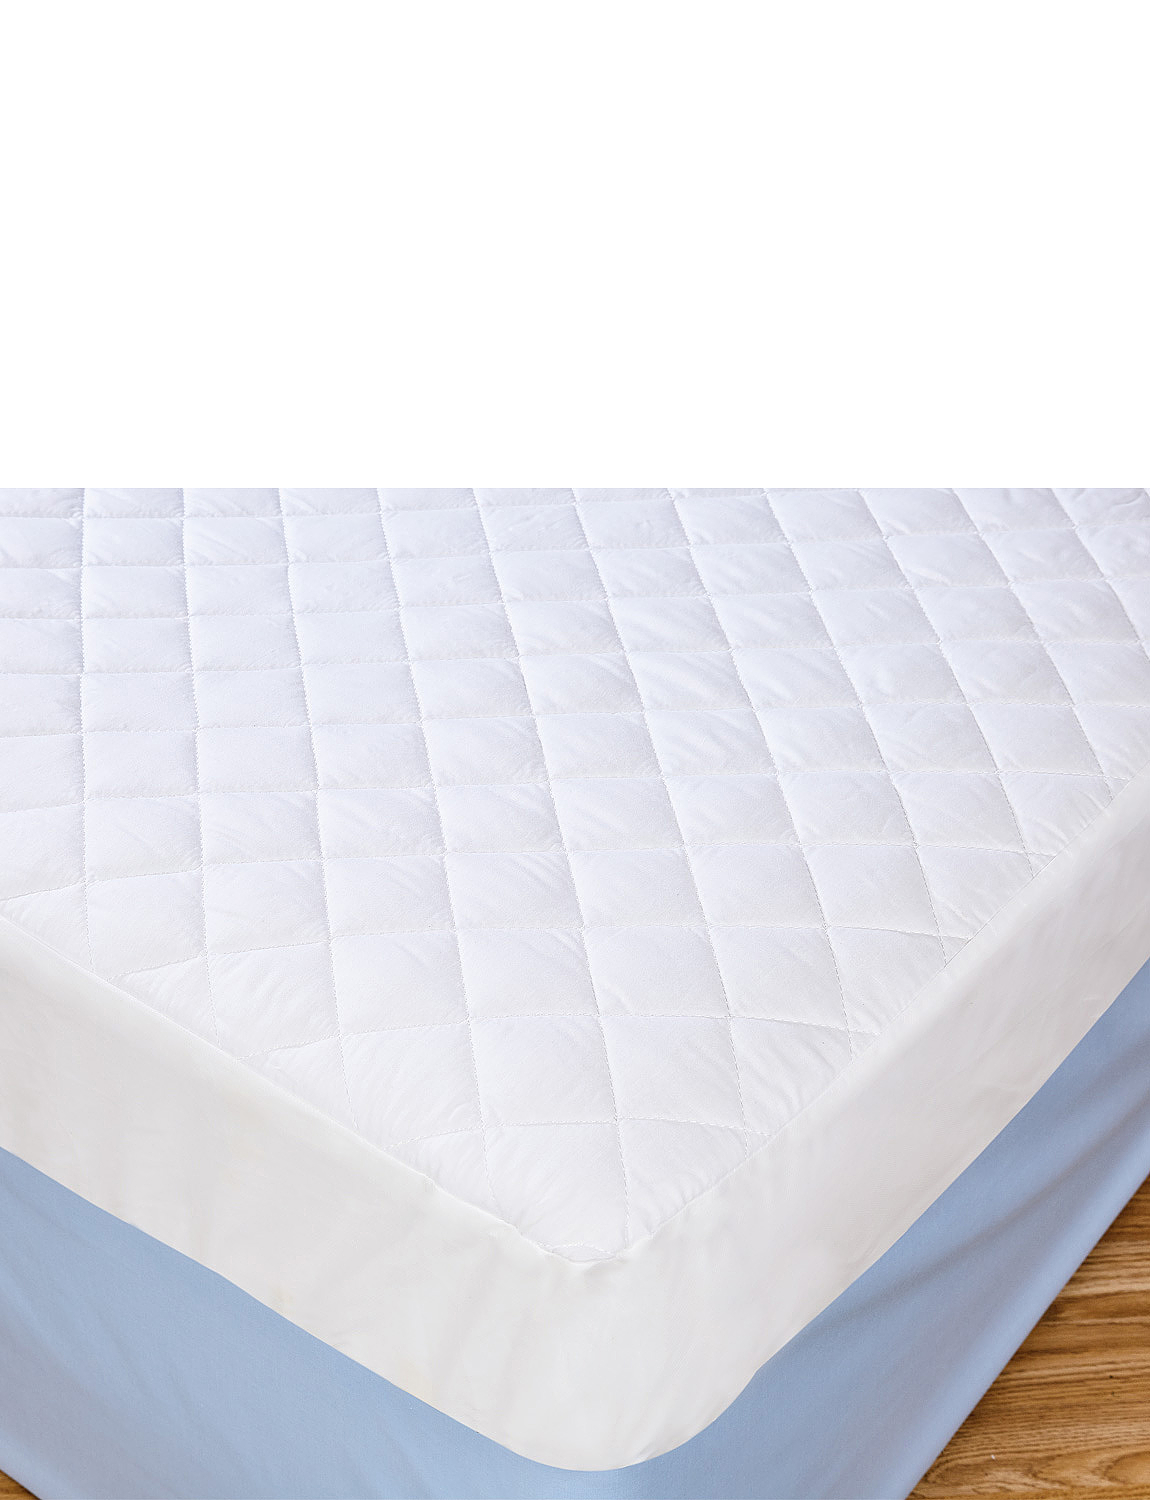 Waterproof Quilted Mattress Protector - White